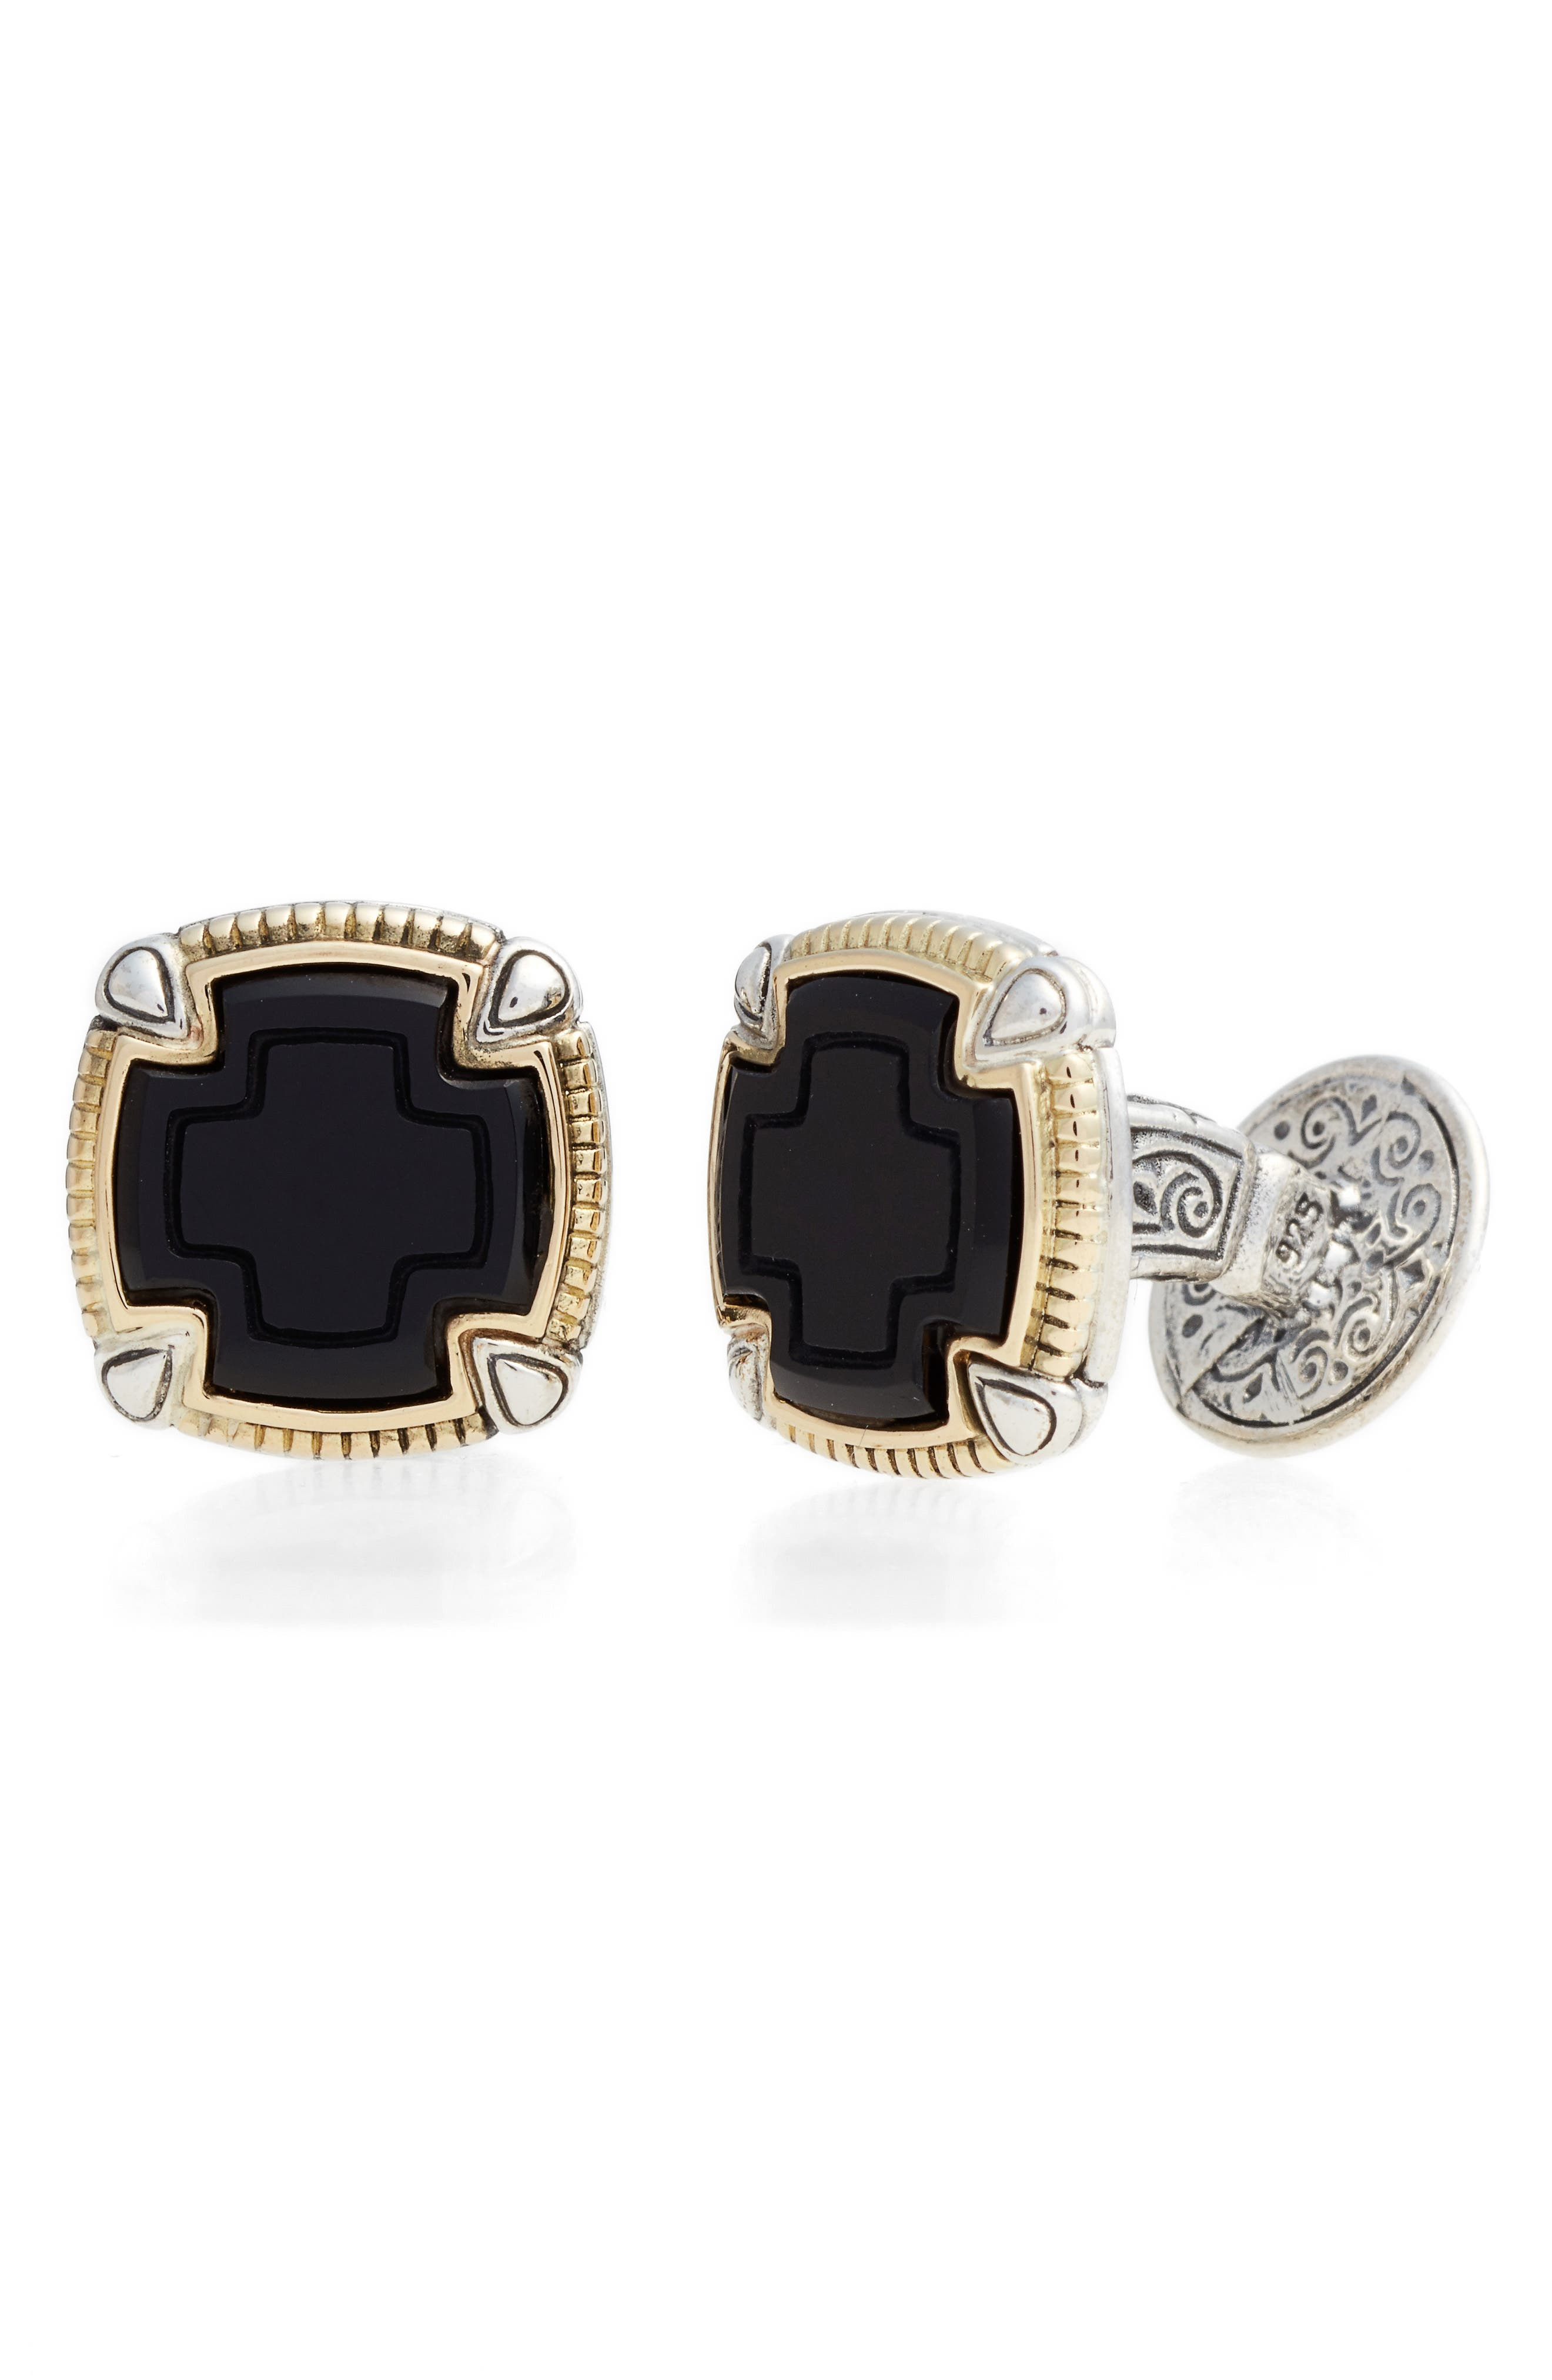 Ares Square Cuff Links,                             Main thumbnail 1, color,                             SILVER/ GOLD/ ONYX